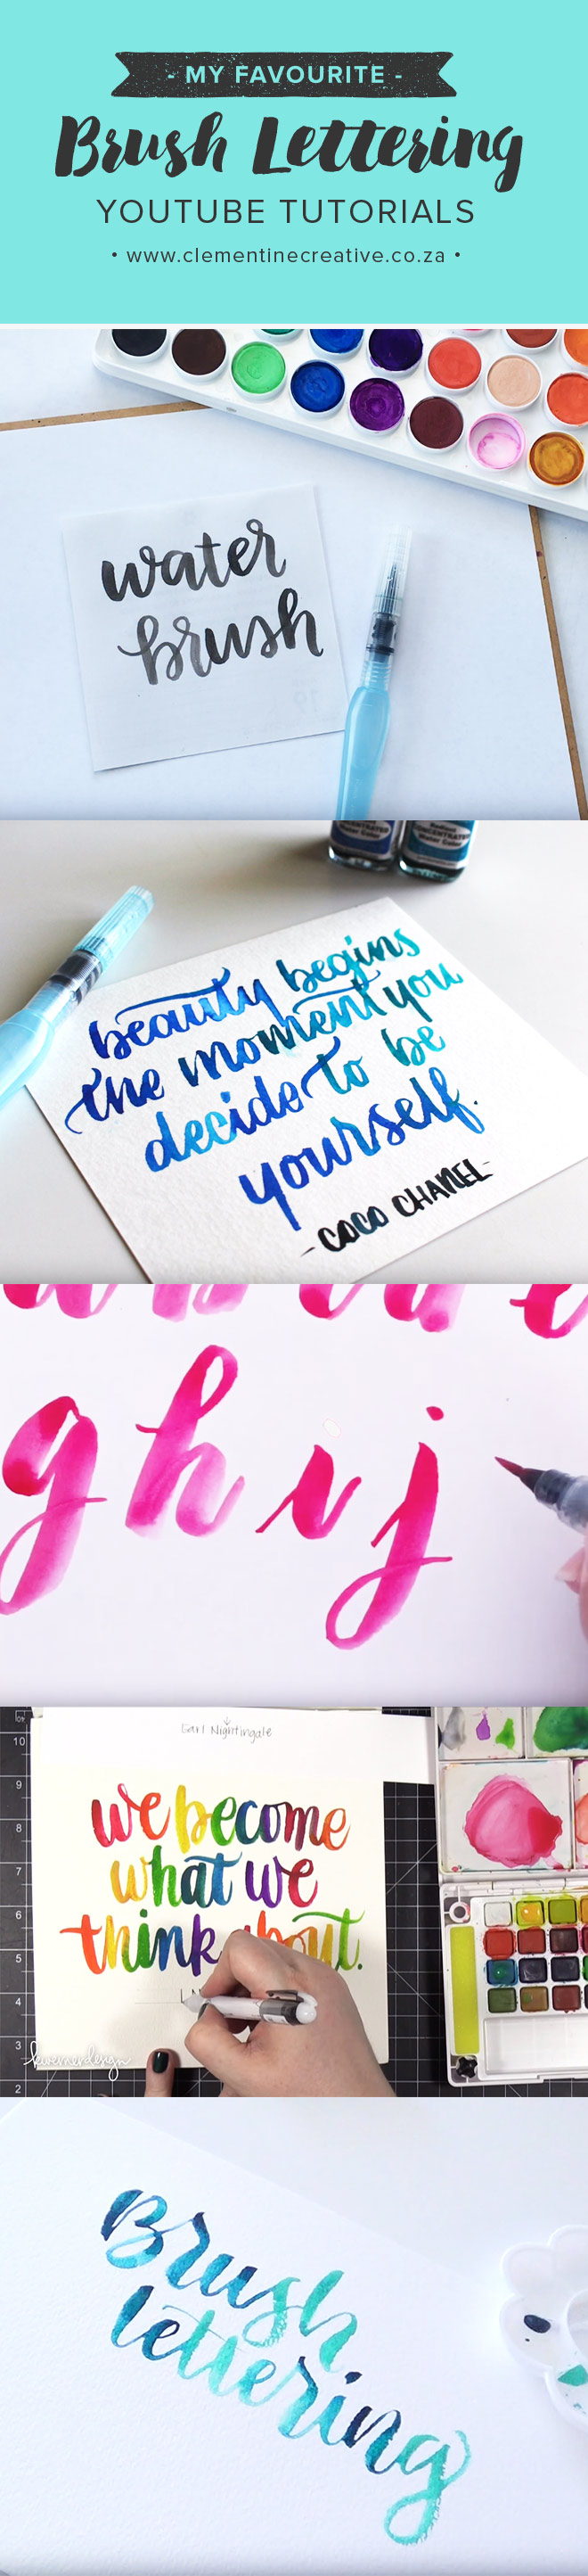 Want to learn brush lettering? Check out this roundup of brilliant youtube tutorials for beginners on how to use a water brush.